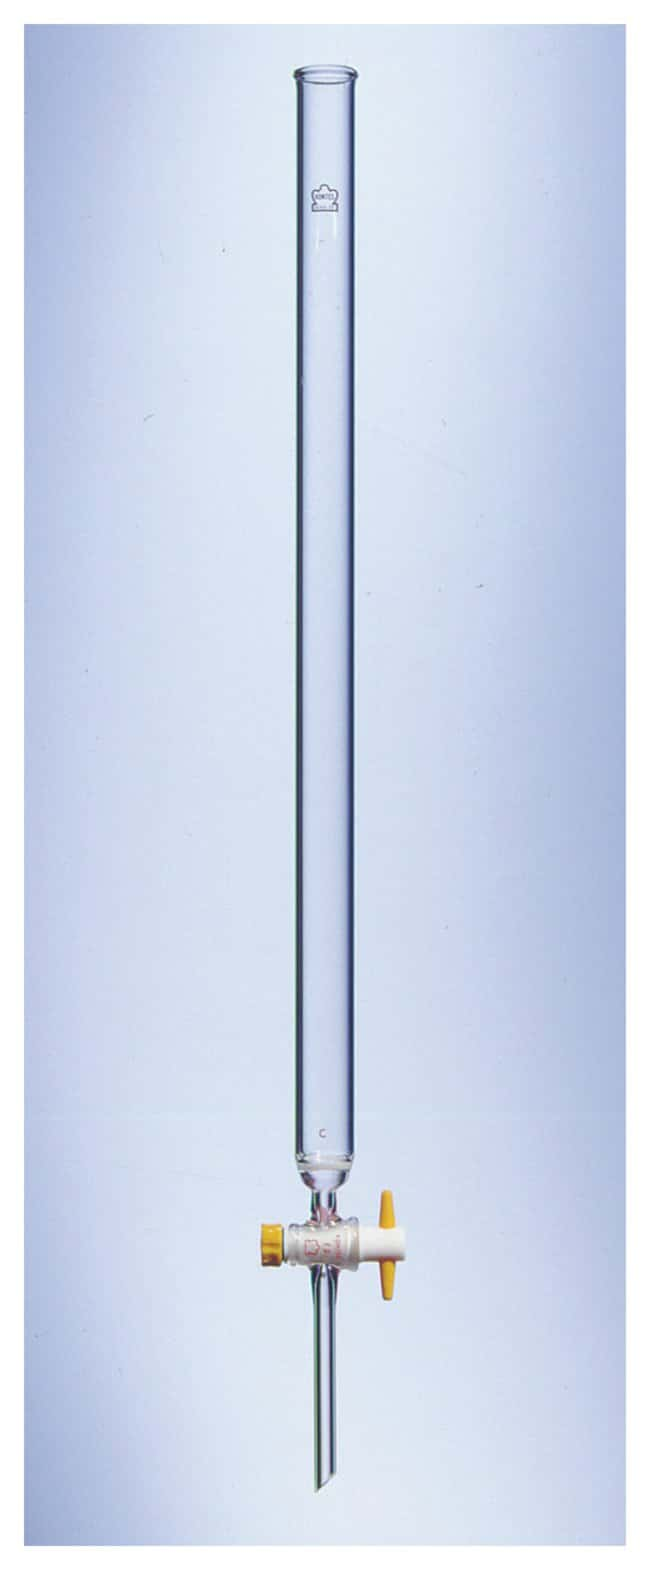 DWK Life Sciences Kimble™ Kontes™ PTFE-Plugged Columns I.D. x L: 25 x 300mm; Vol.: 140mL DWK Life Sciences Kimble™ Kontes™ PTFE-Plugged Columns